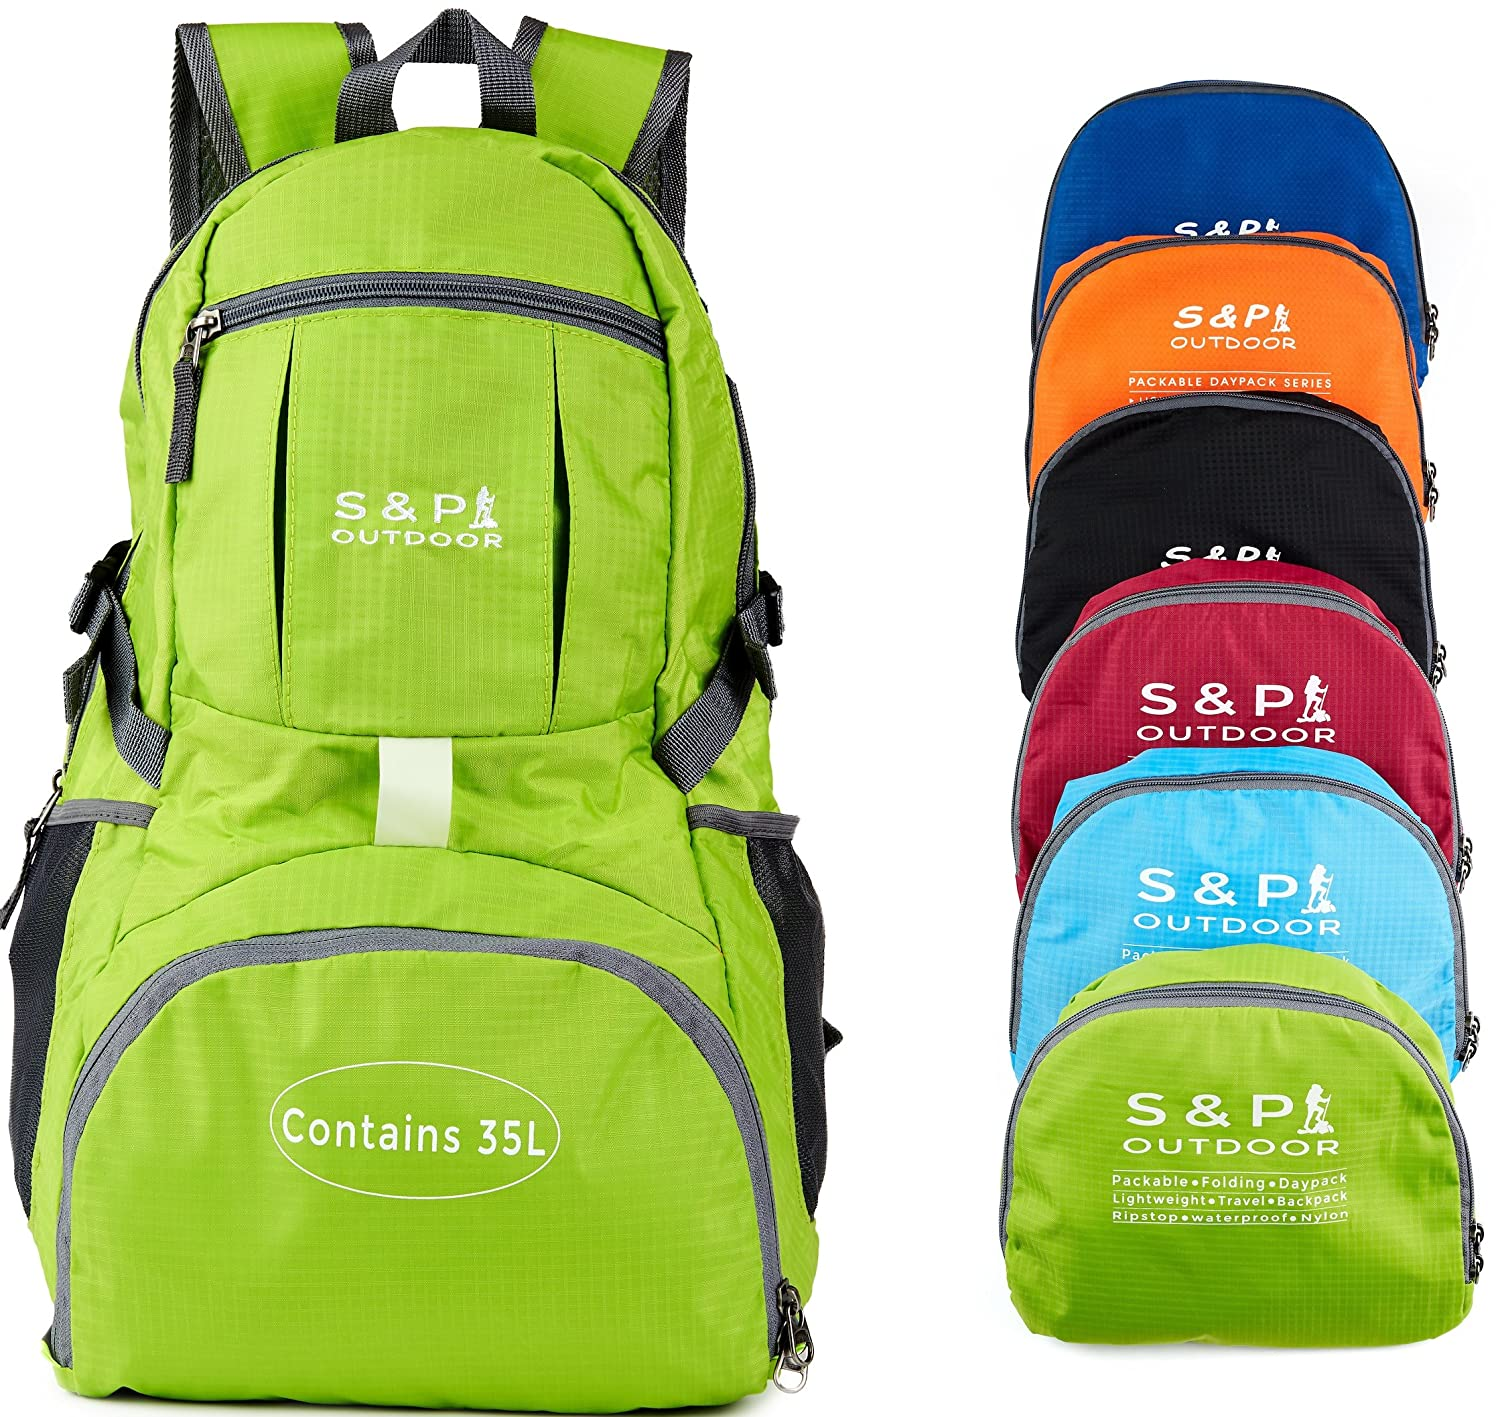 0675f5e7c5c9 Neekfox Lightweight Packable Travel Hiking Backpack Daypack 35l Foldable  Camping Backpack